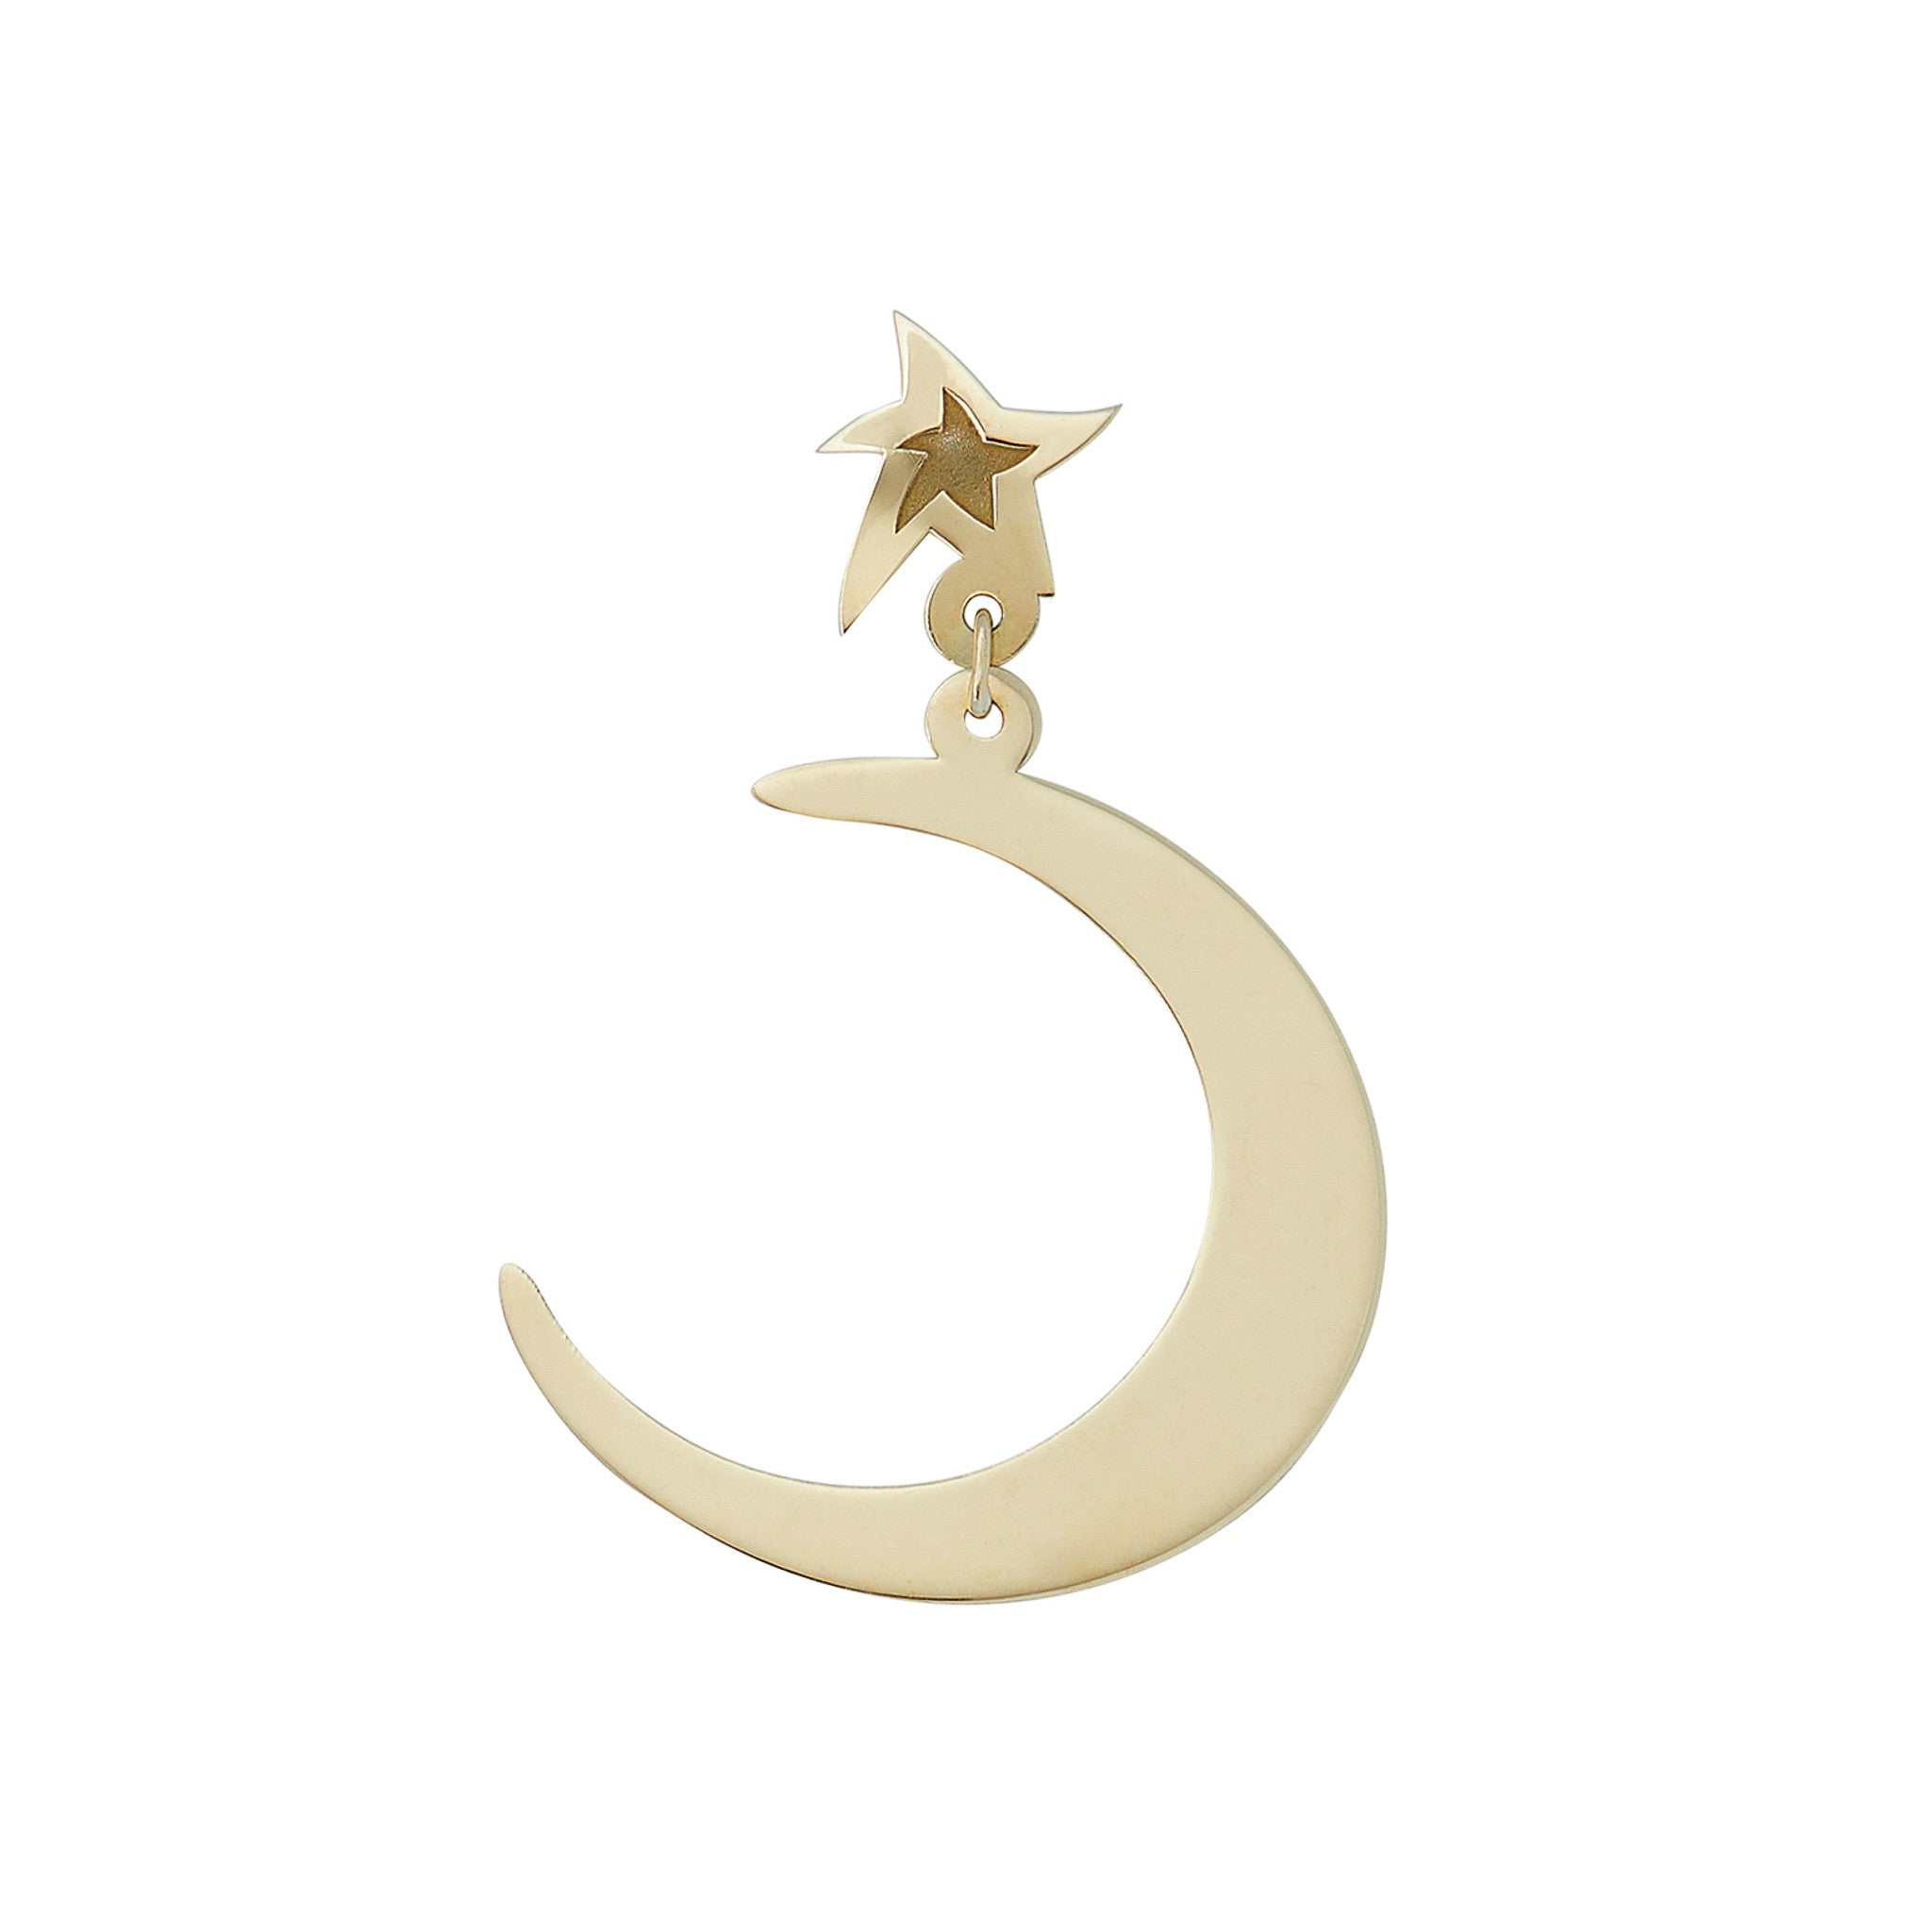 The Moon Singlet earring